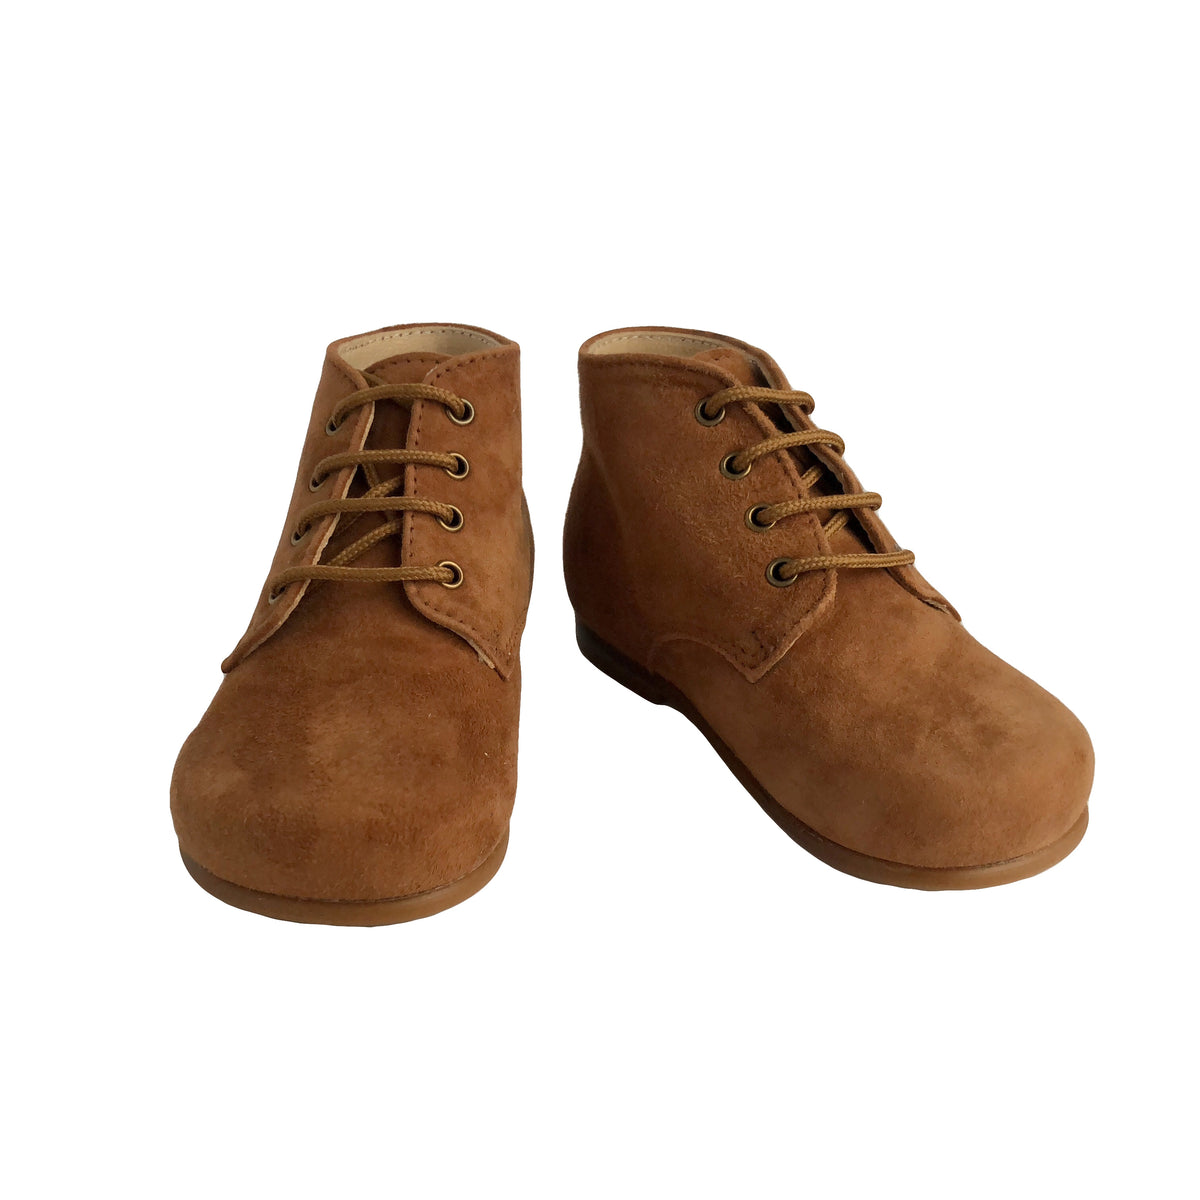 d9a09f437f5b3 Baby Ankle Boots by Beberlis - Caramel